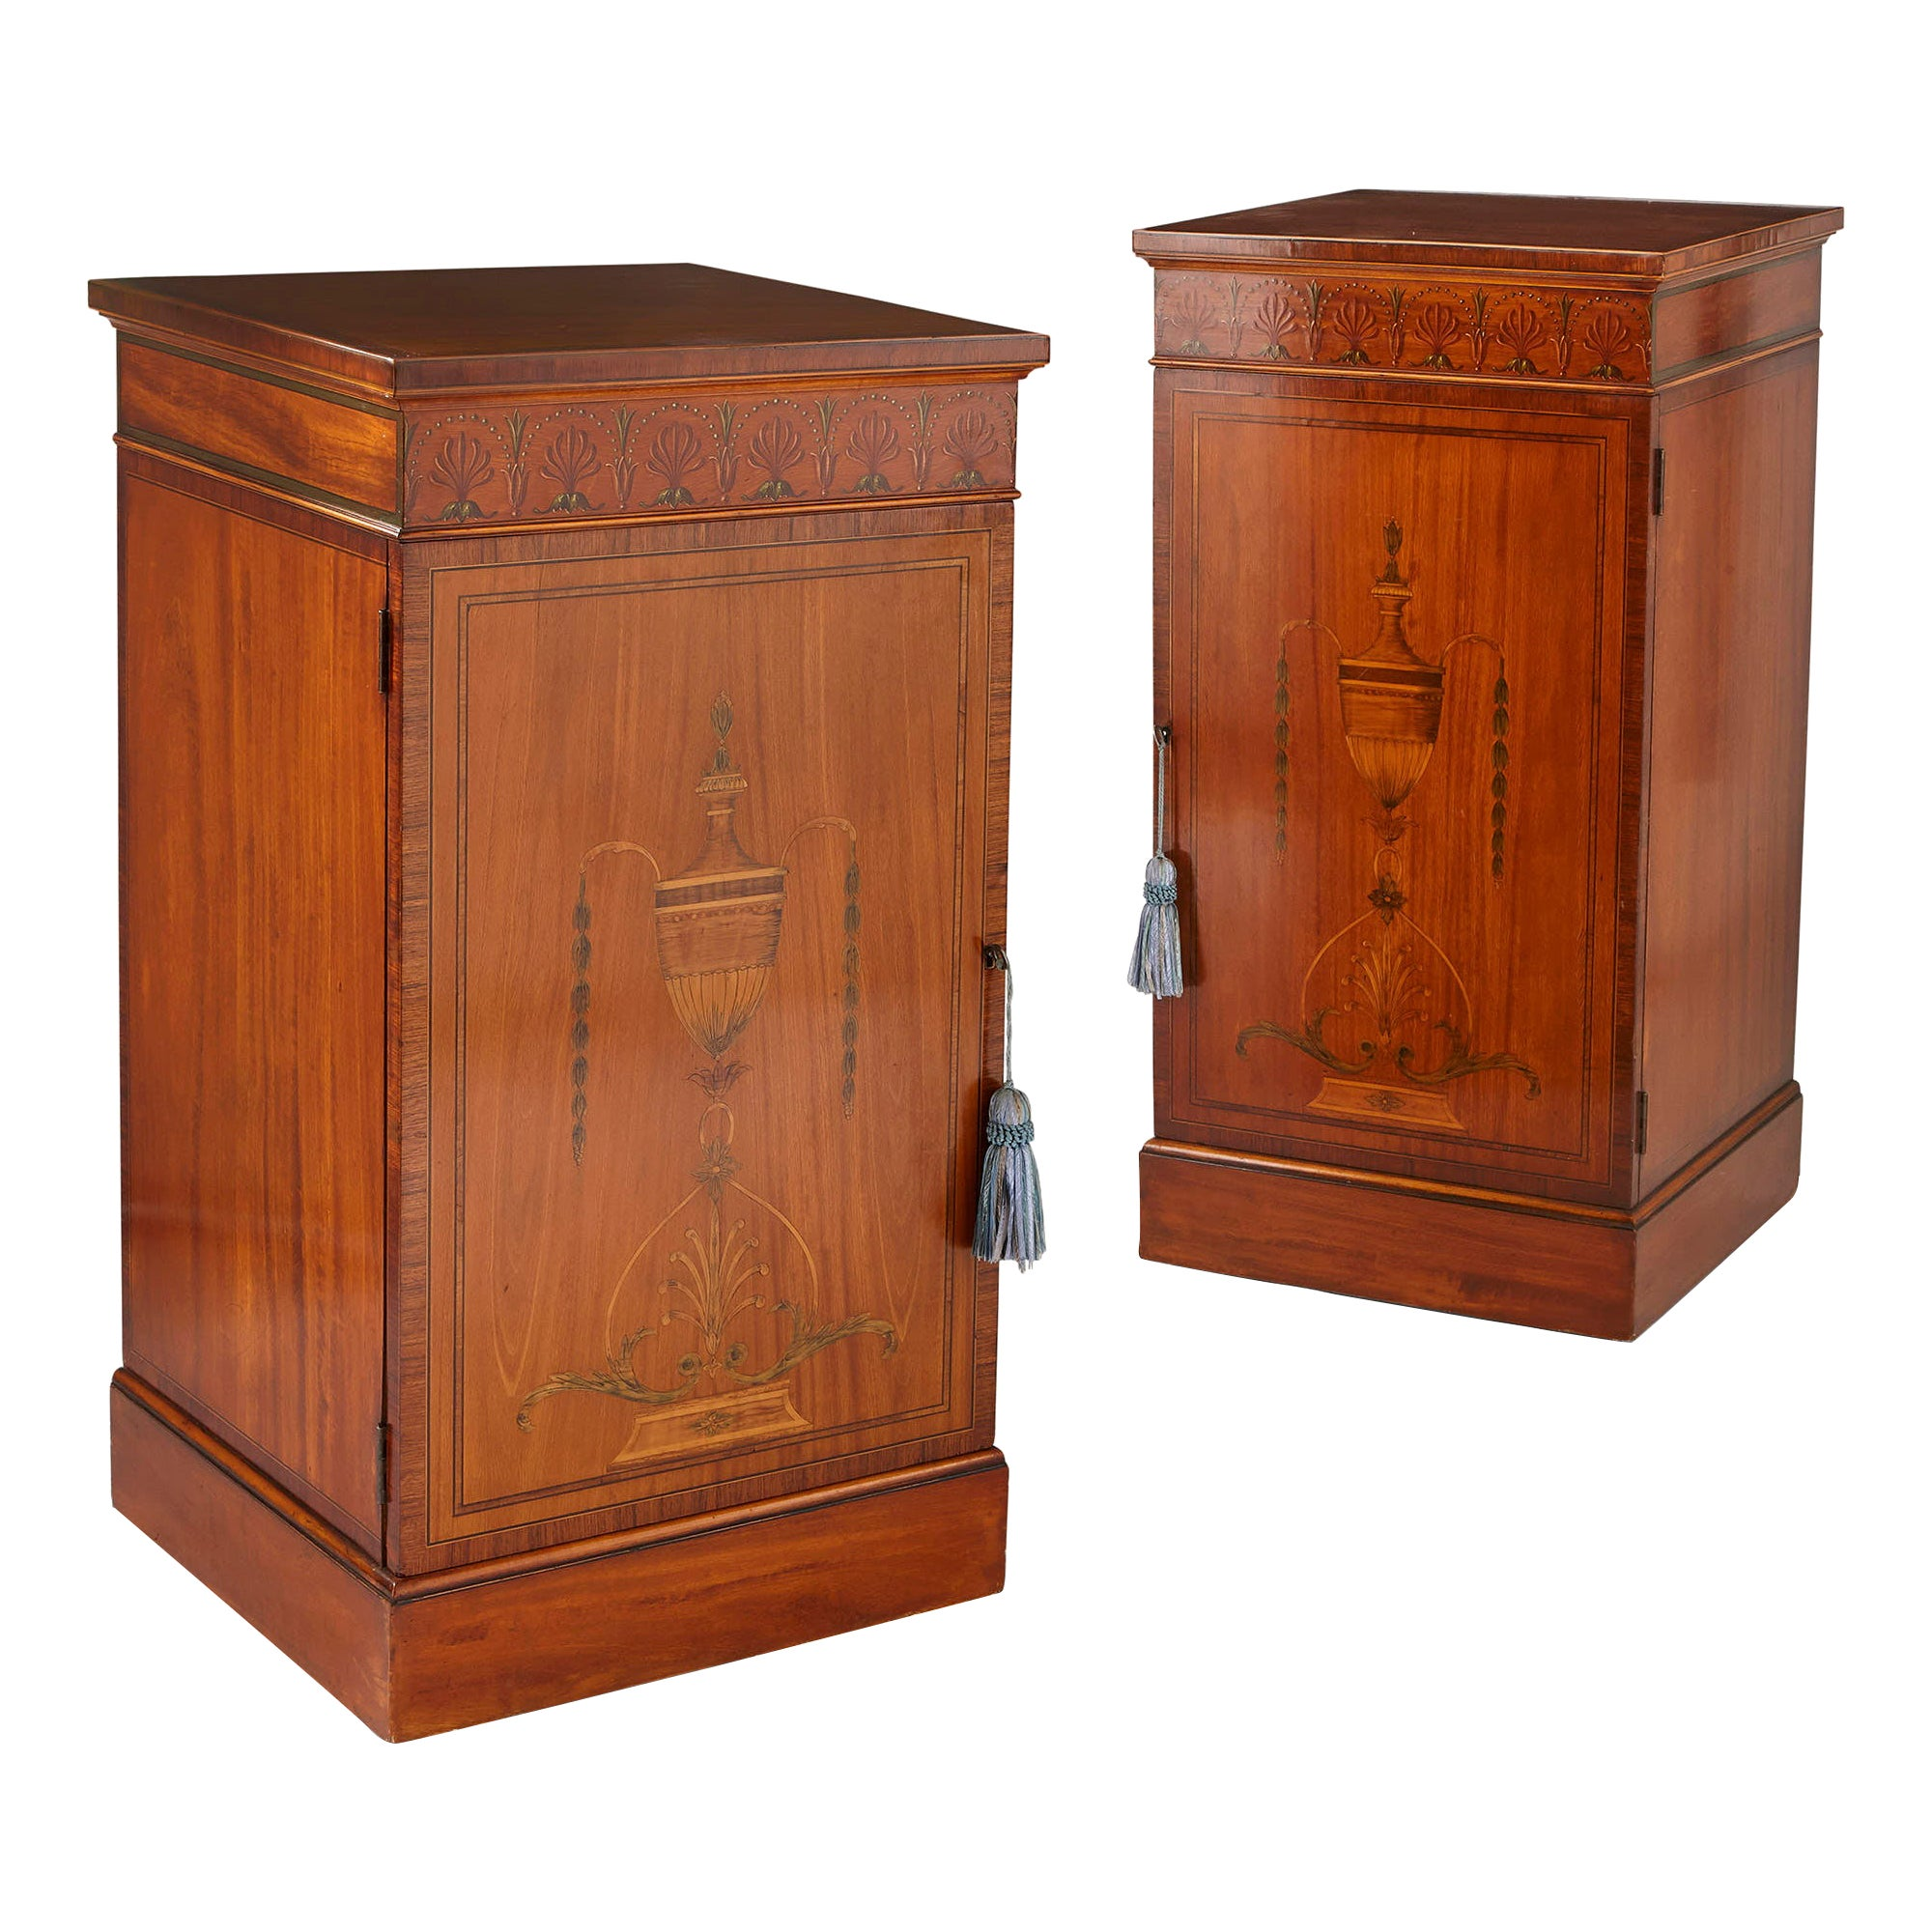 Two Antique Satinwood and Rosewood Marquetry Cabinets